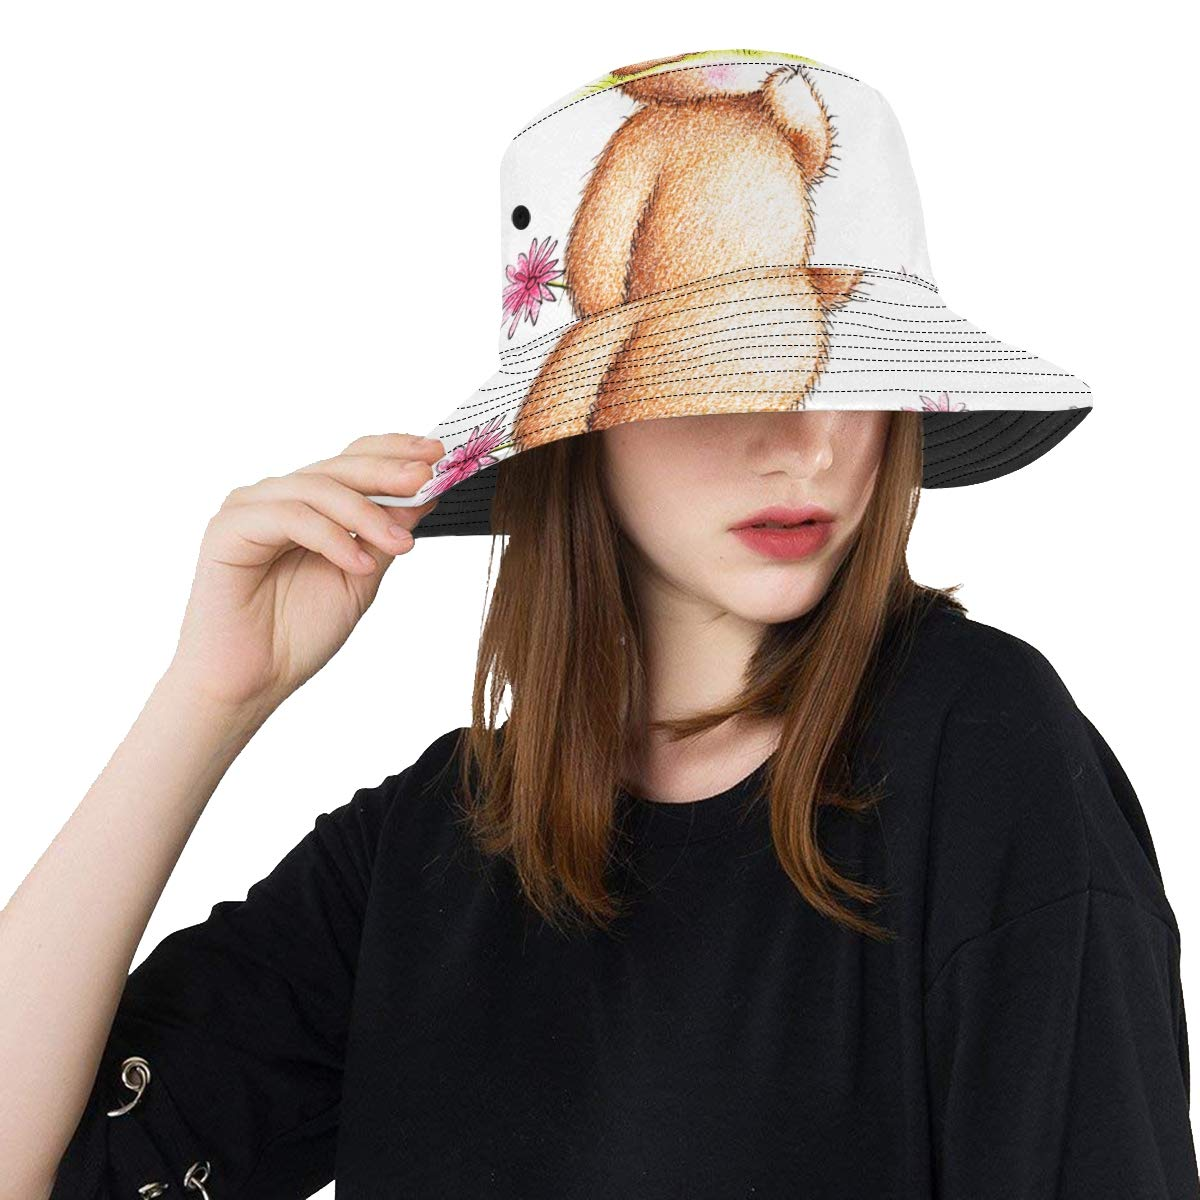 Women and Men with Customize Top Packable Fisherman Cap for Outdoor Travel Teens Cute Drawn Teddy Bear Flowers New Summer Unisex Cotton Fashion Fishing Sun Bucket Hats for Kid